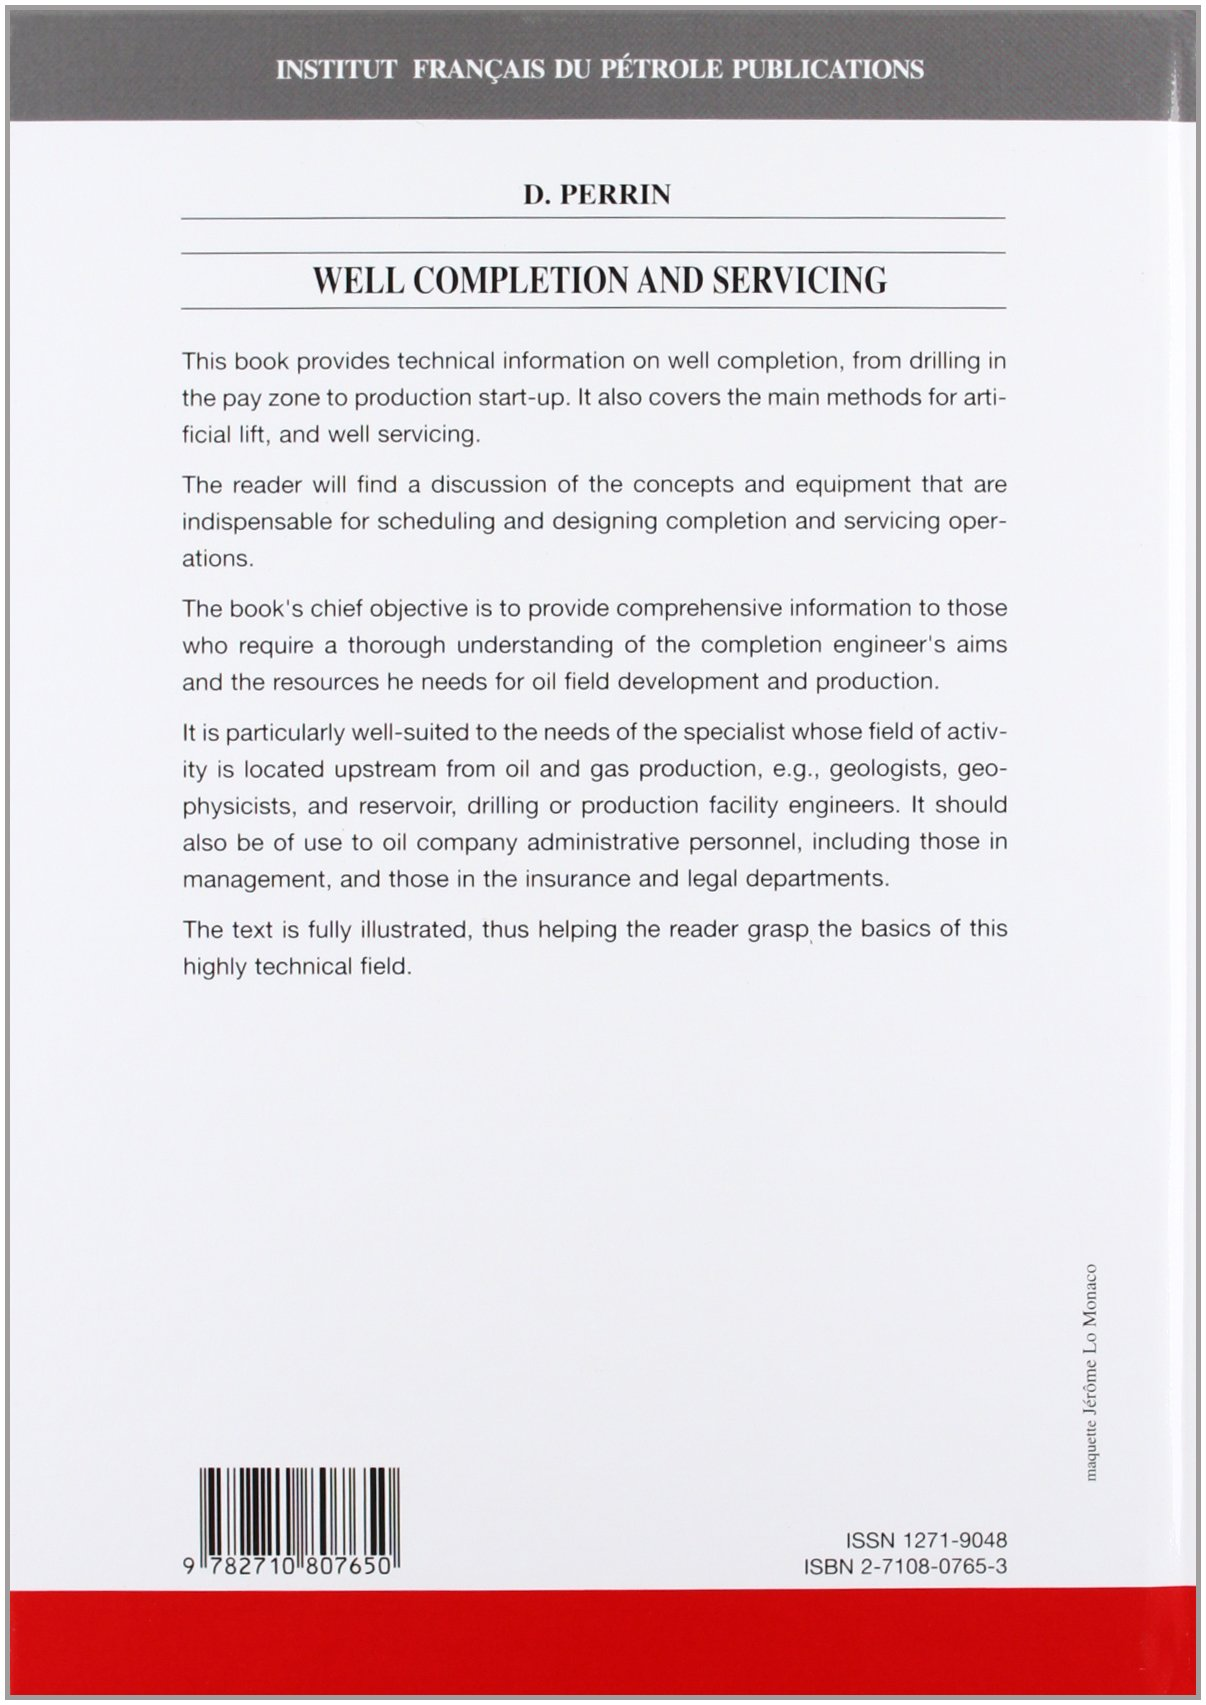 Well Completion and Servicing (Oil and Gas Field Development Techniques):  Denis Perrin: 9782710807650: Amazon.com: Books